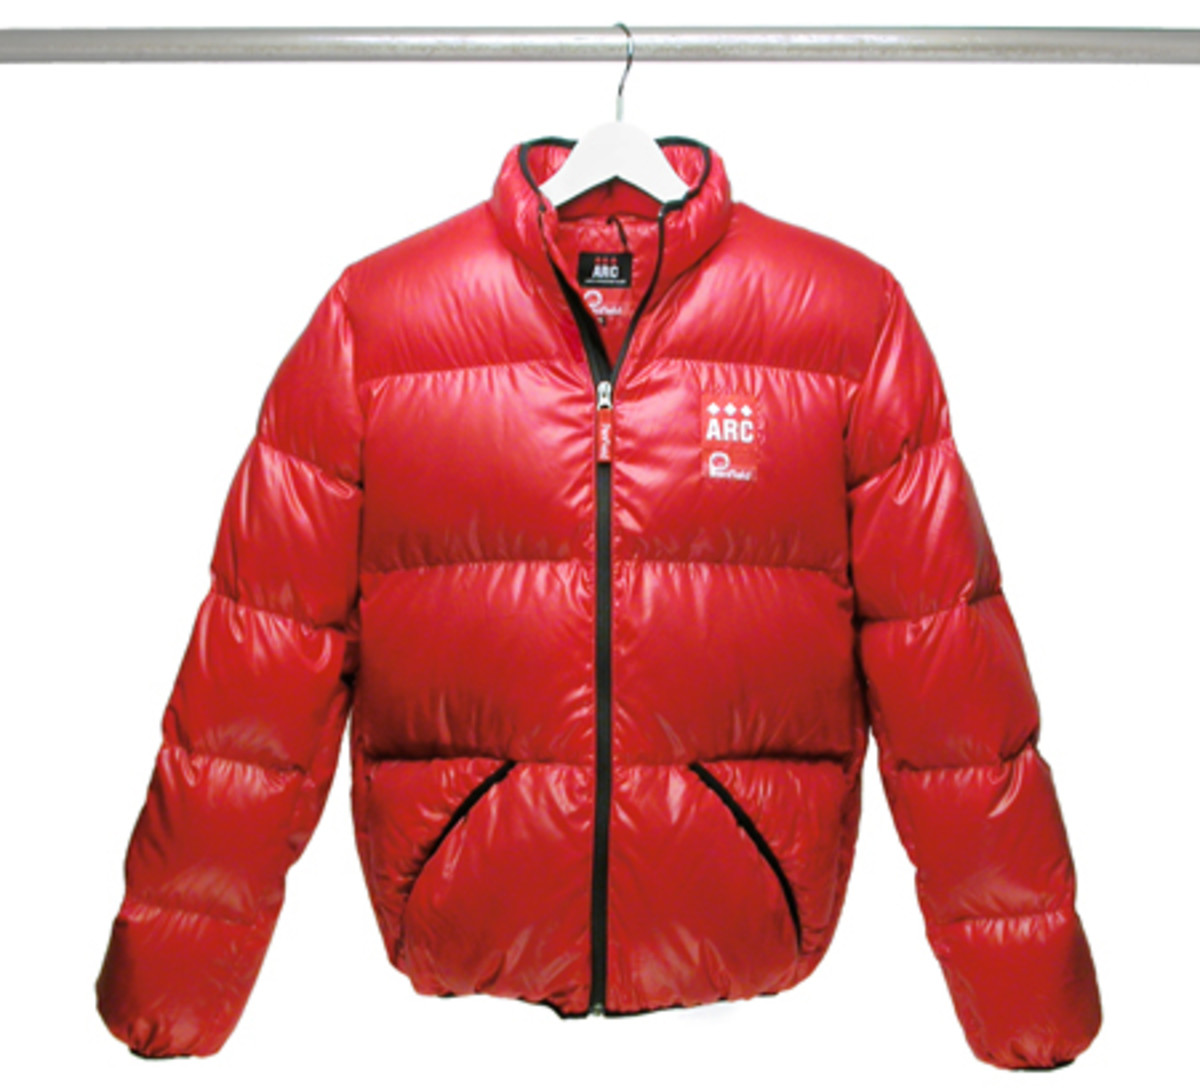 A.R.C. x Penfield Walkabout Down Coat - Avail. 9/22 - 6